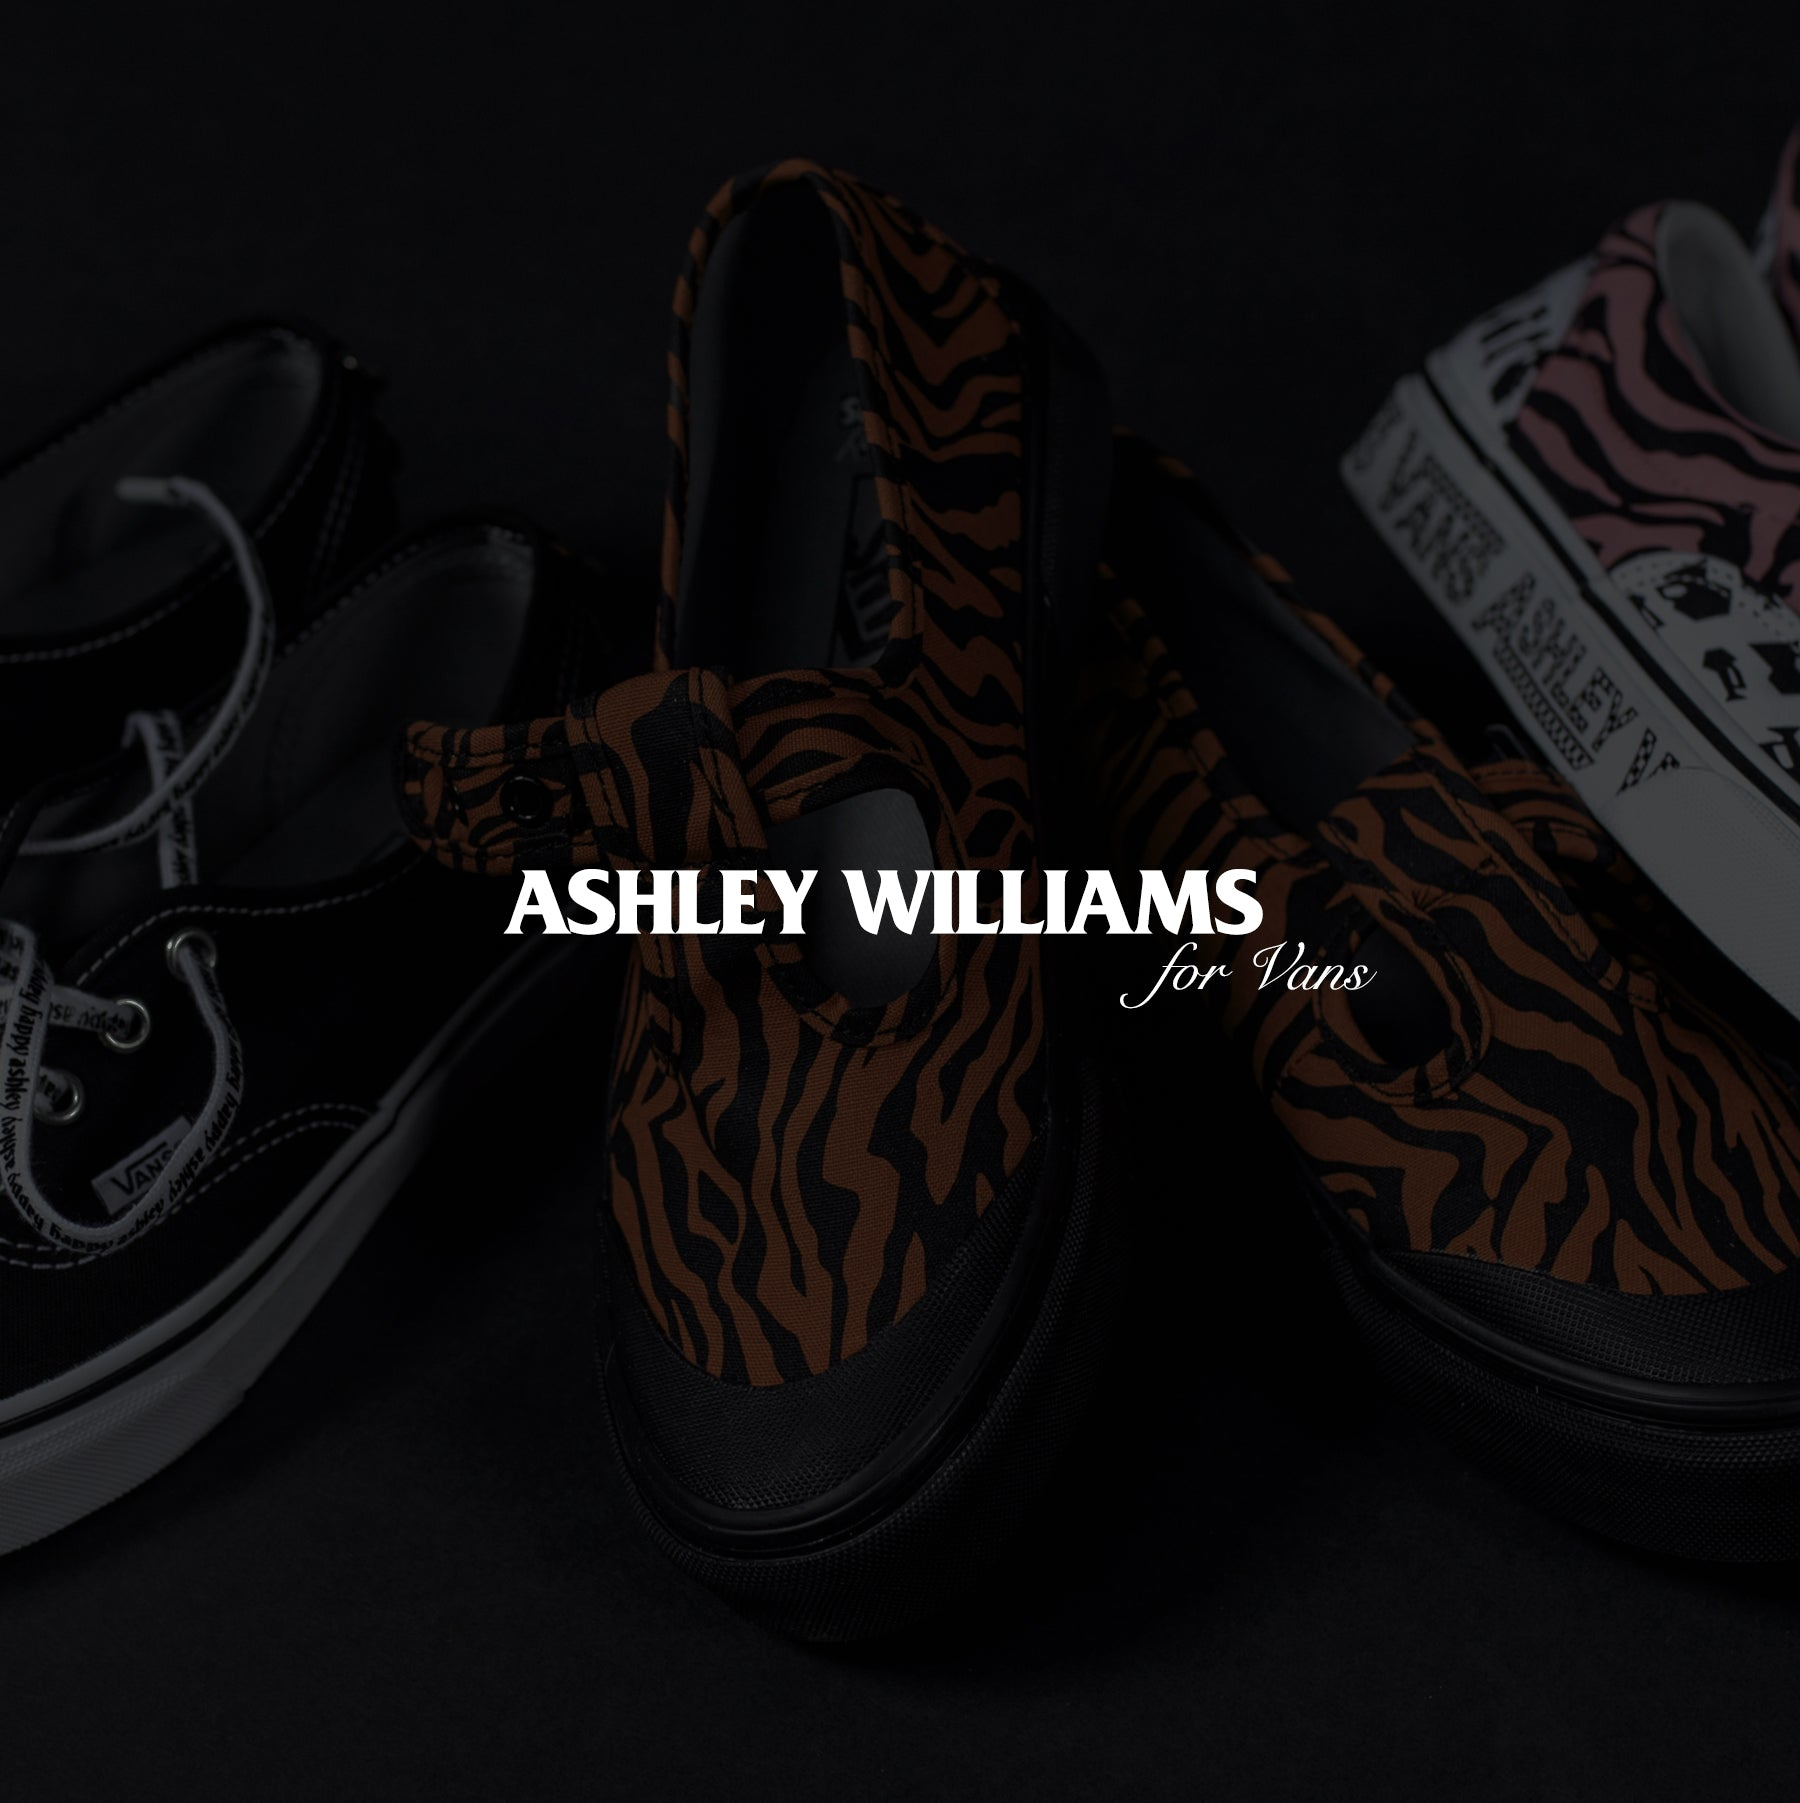 fc3e8a5bbc ASHLEY WILLIAMS X VANS FEATURE